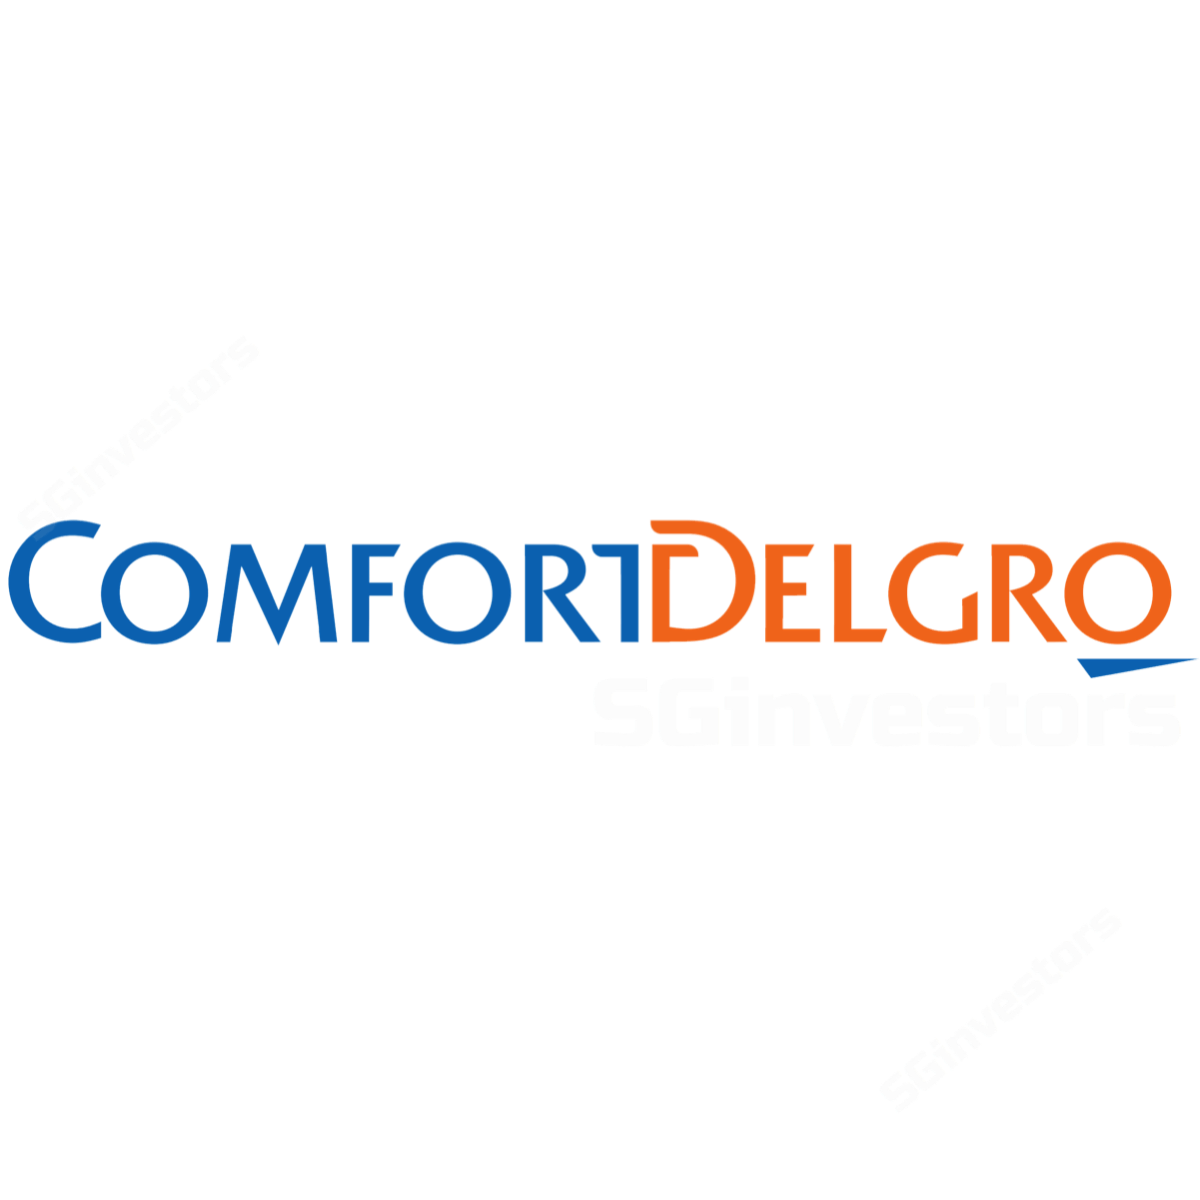 ComfortDelGro - CIMB Research 2018-02-14: 4Q17 In Line; Awaiting LCR Deal Completion